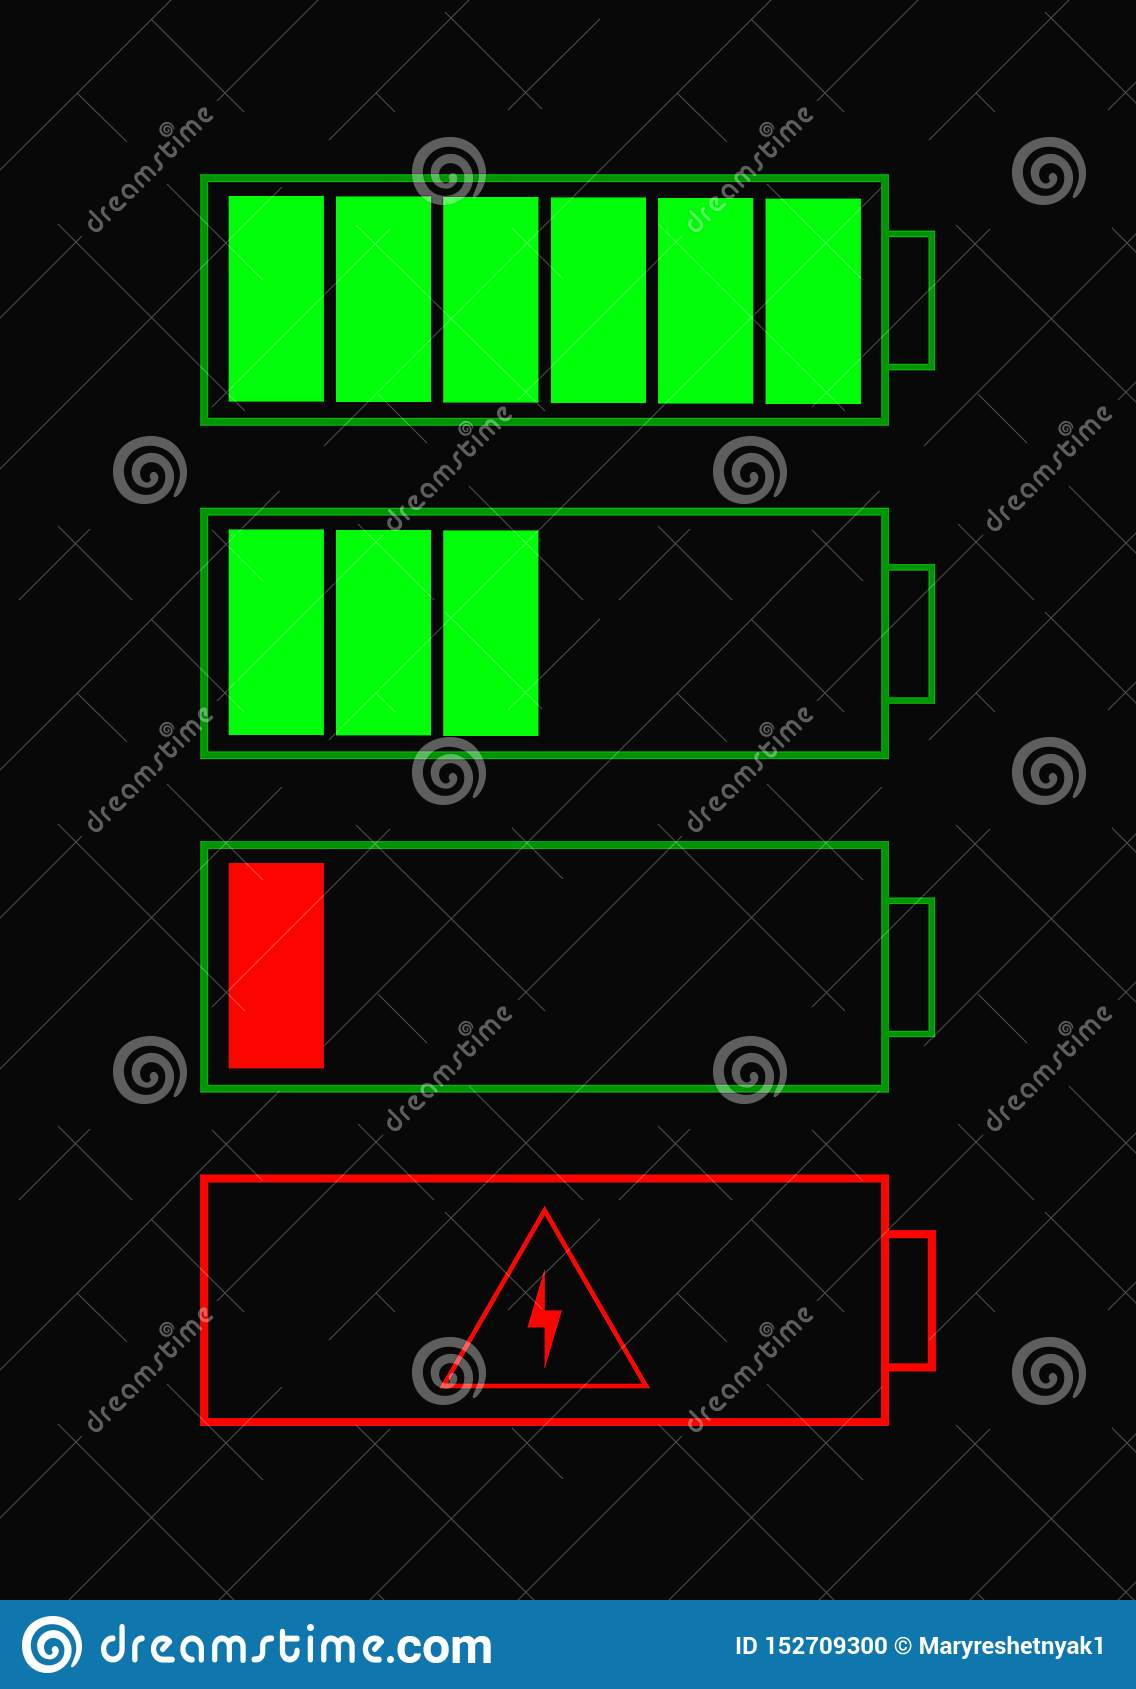 Battery indicator items. battery icons set for website. Battery charge status with low and high energy levels.Accumulator icon